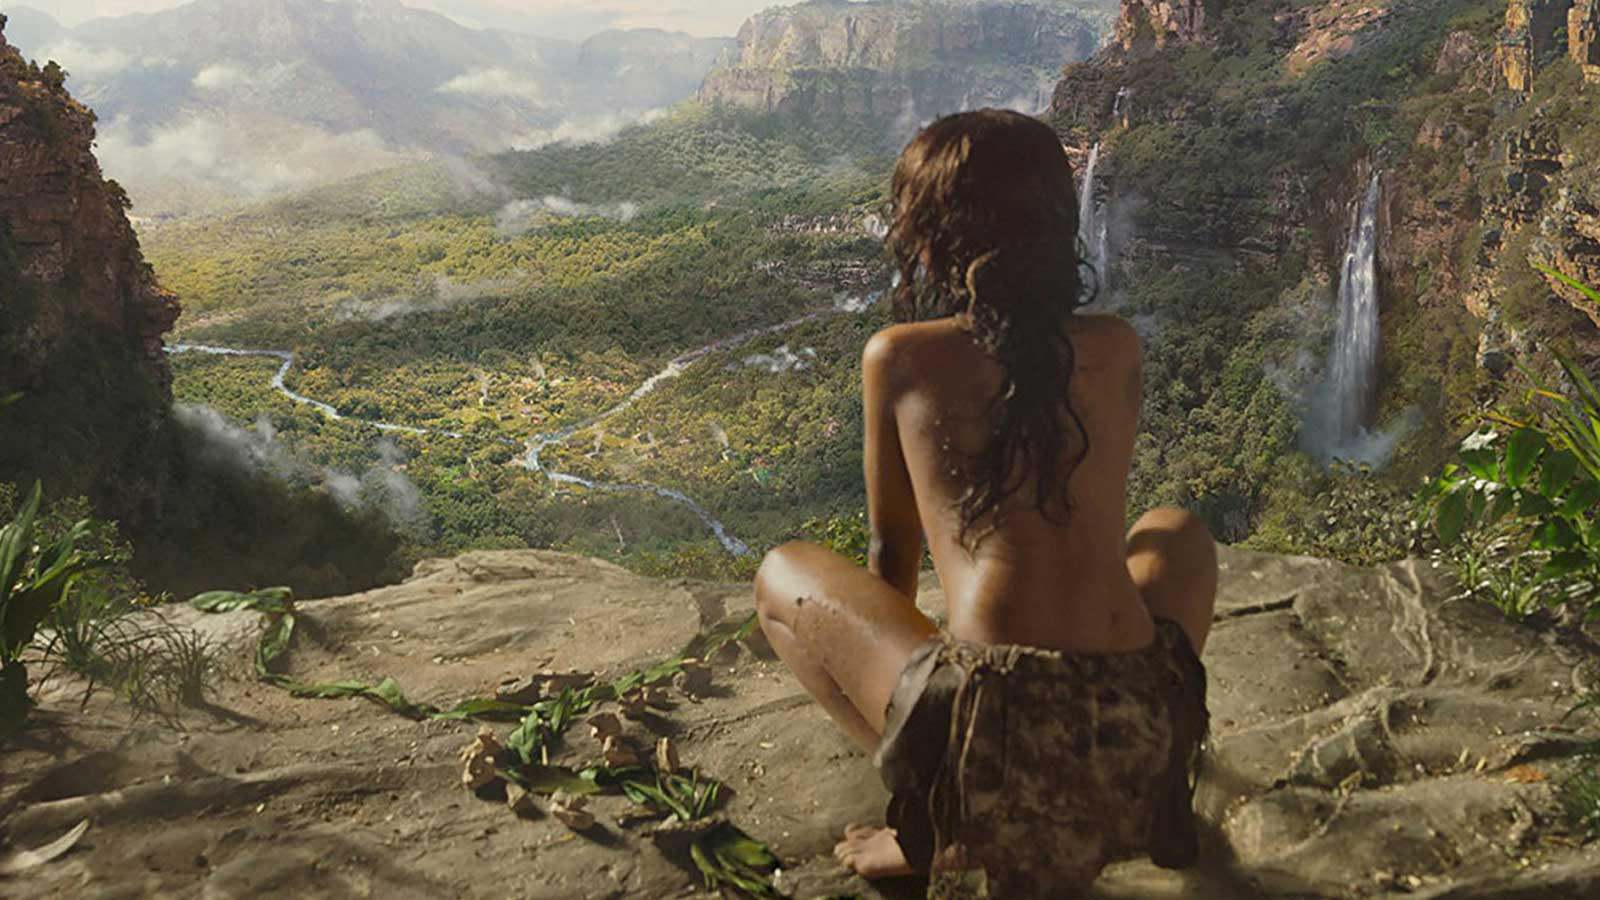 Mowgli Review - OC Movie Reviews - Movie Reviews, Movie News, Documentary Reviews, Short Films, Short Film Reviews, Trailers, Movie Trailers, Interviews, film reviews, film news, hollywood, indie films, documentaries, TV shows